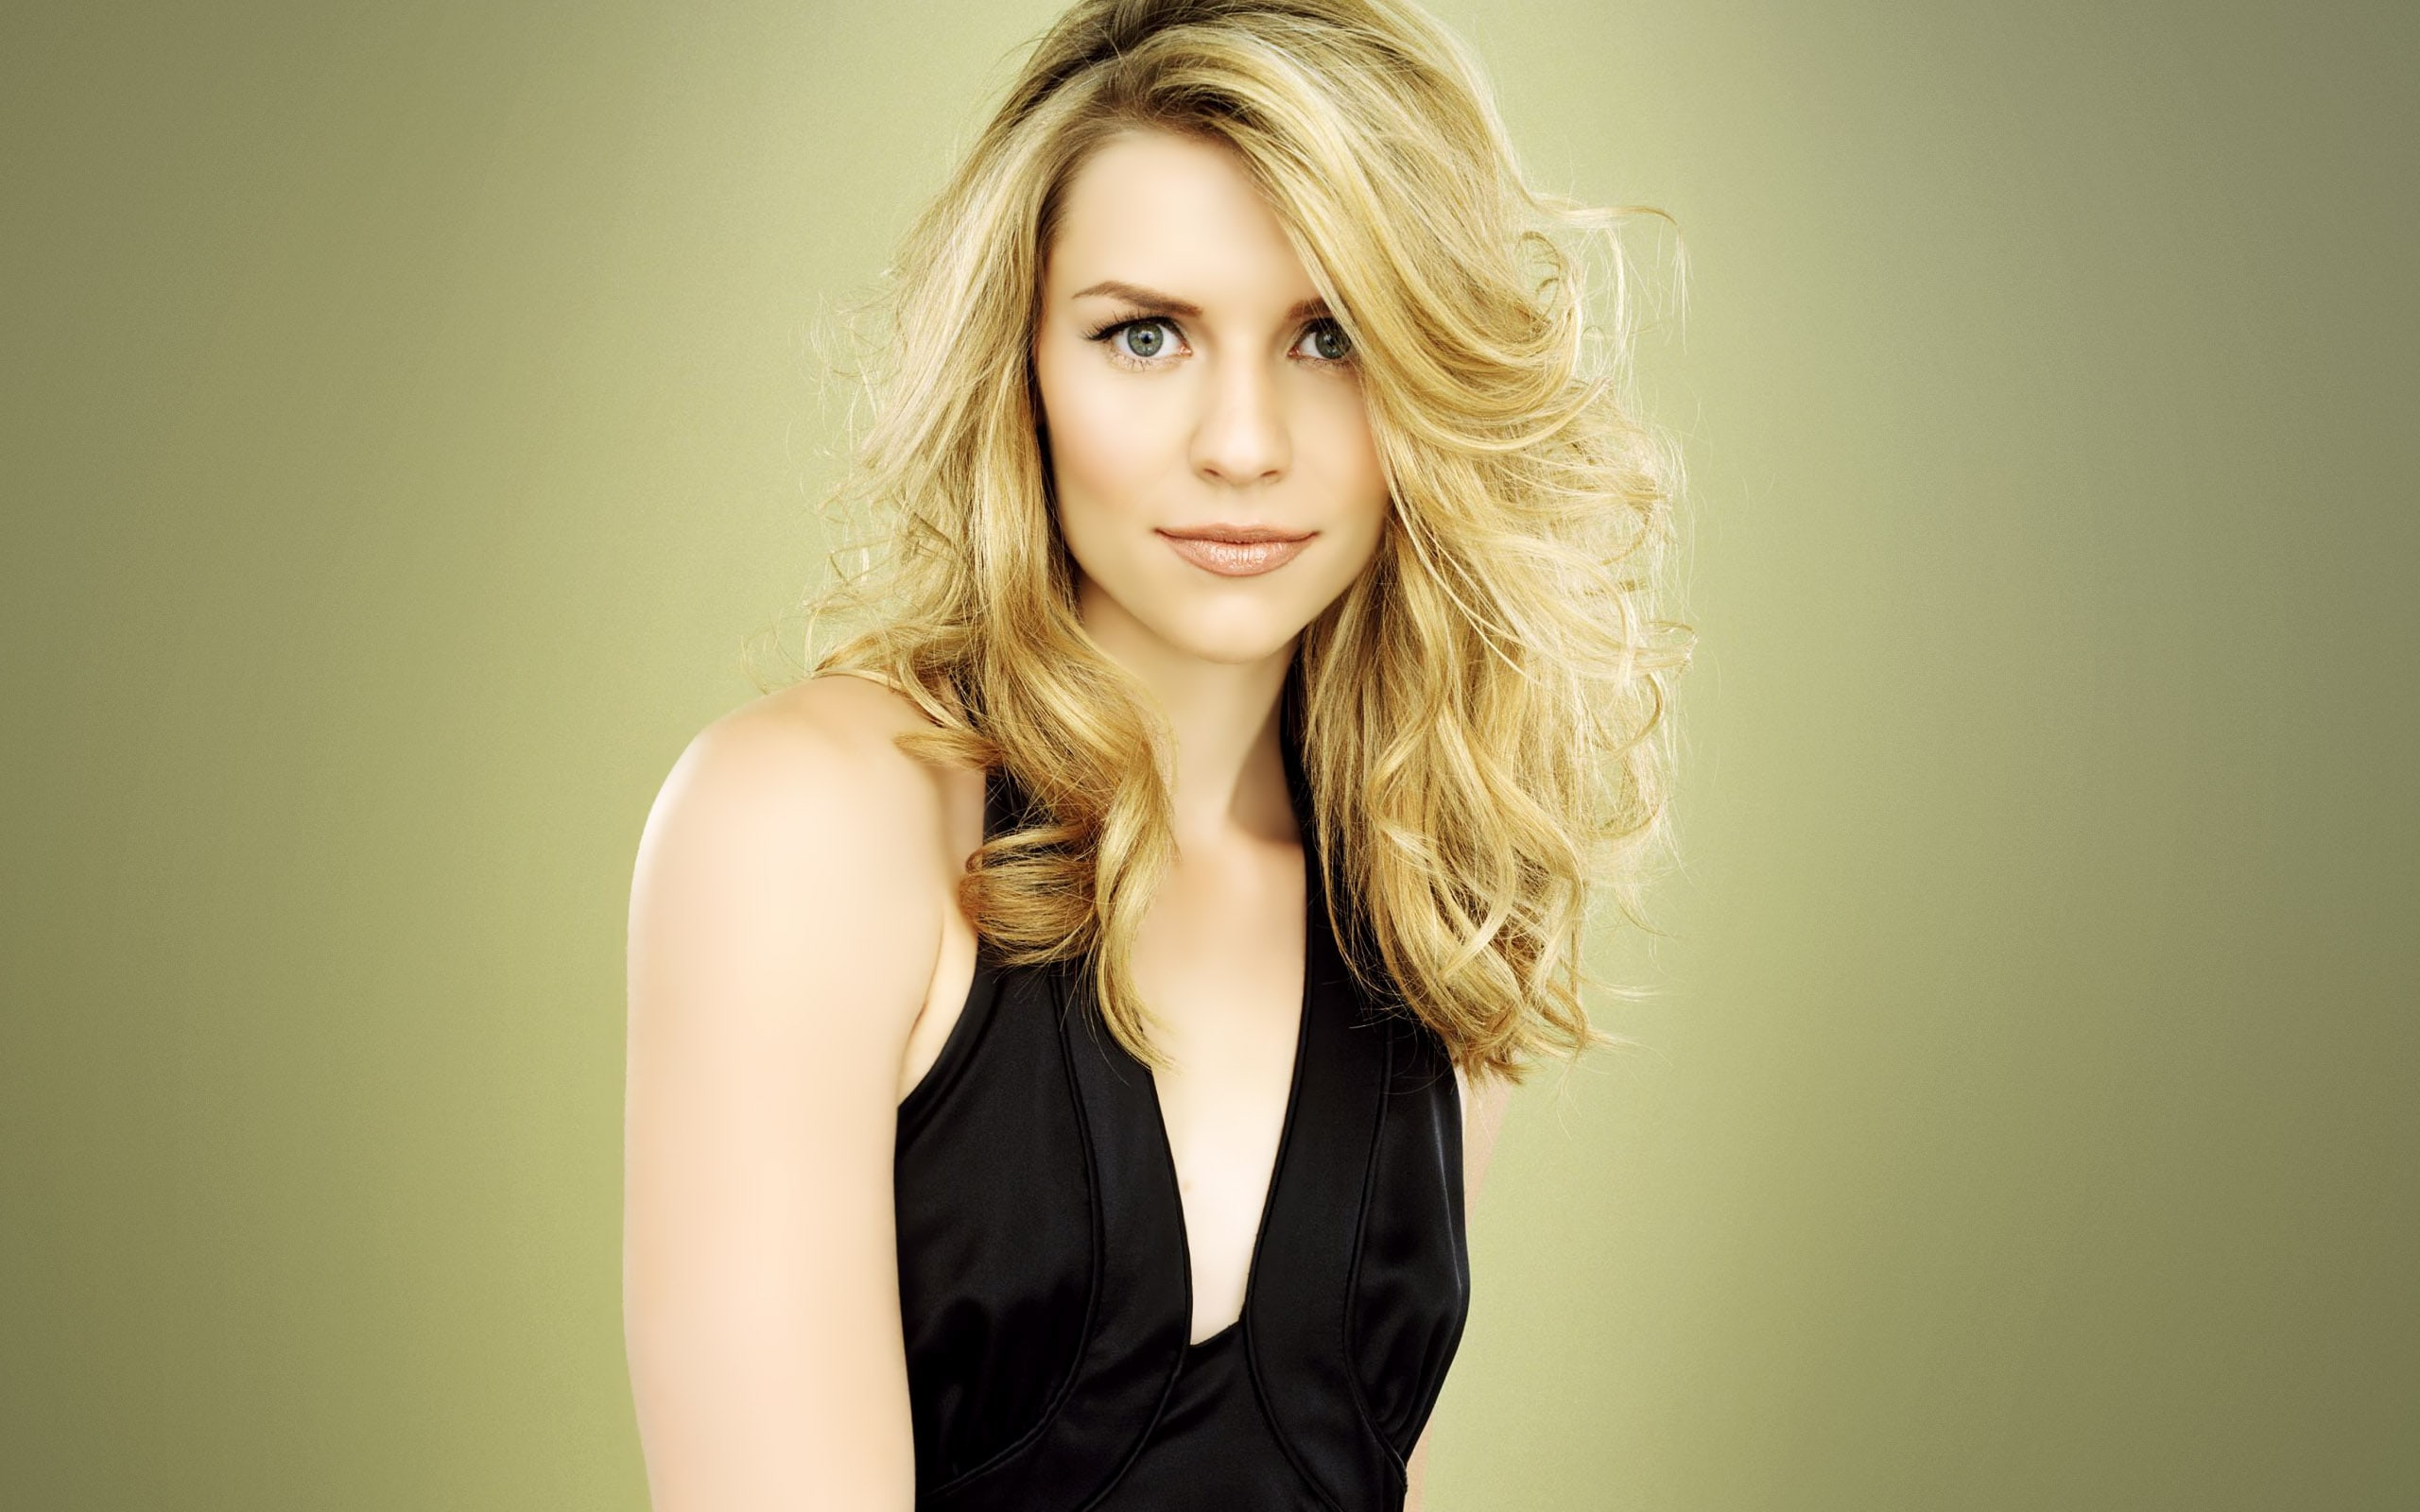 2560x1600 - Claire Danes Wallpapers 35